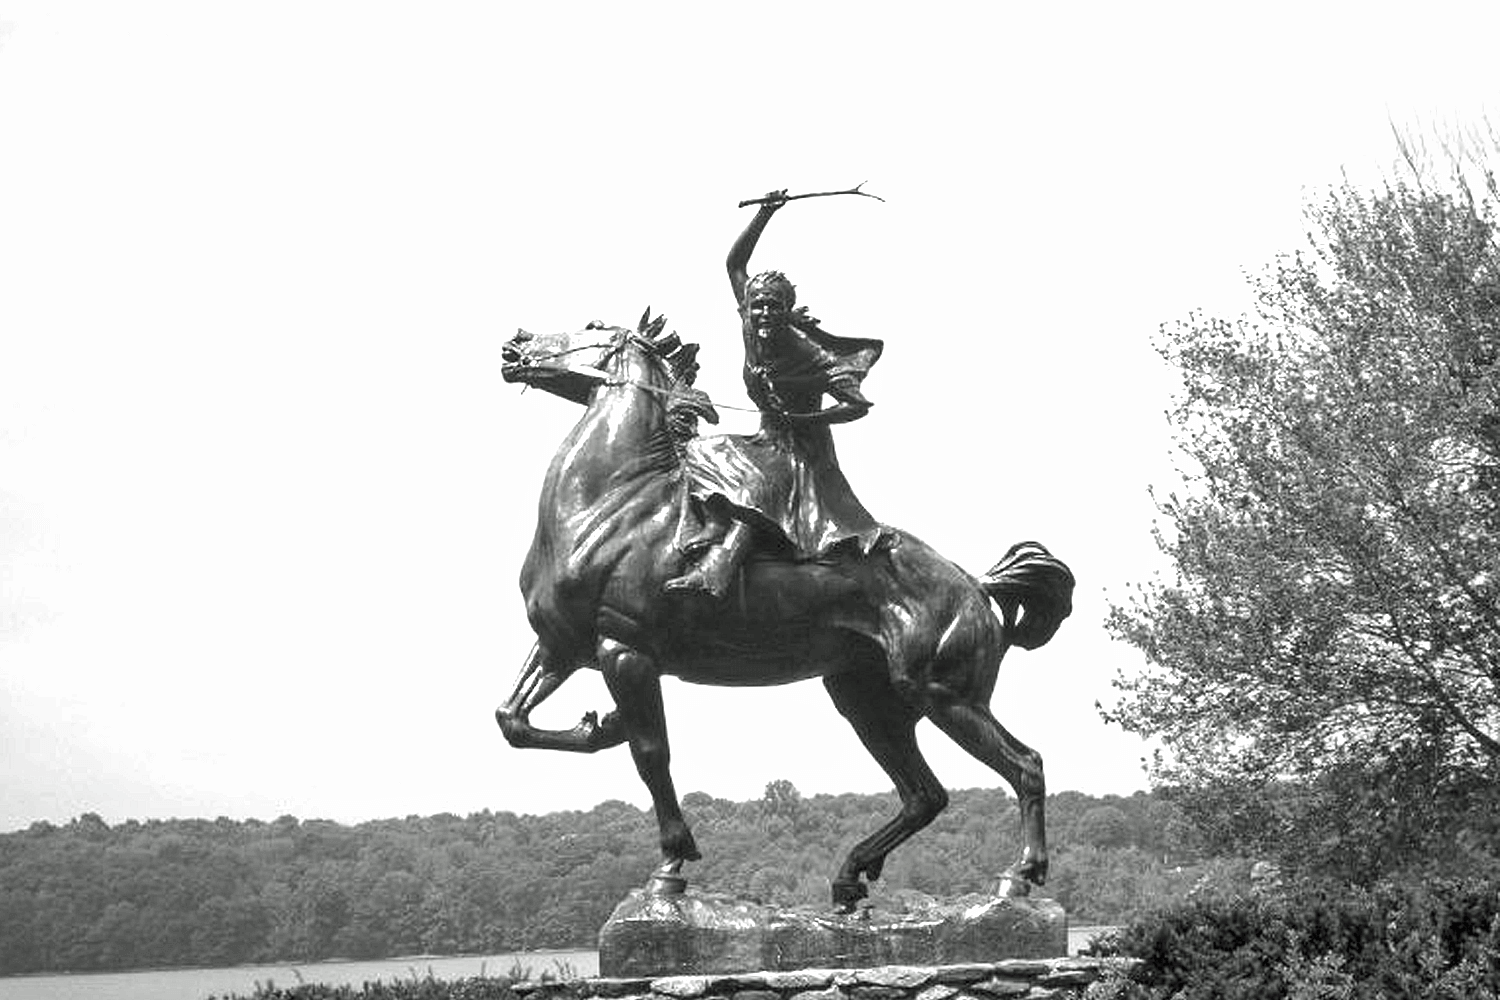 Sybil Ludington,Revolutionary War hero, riding horse